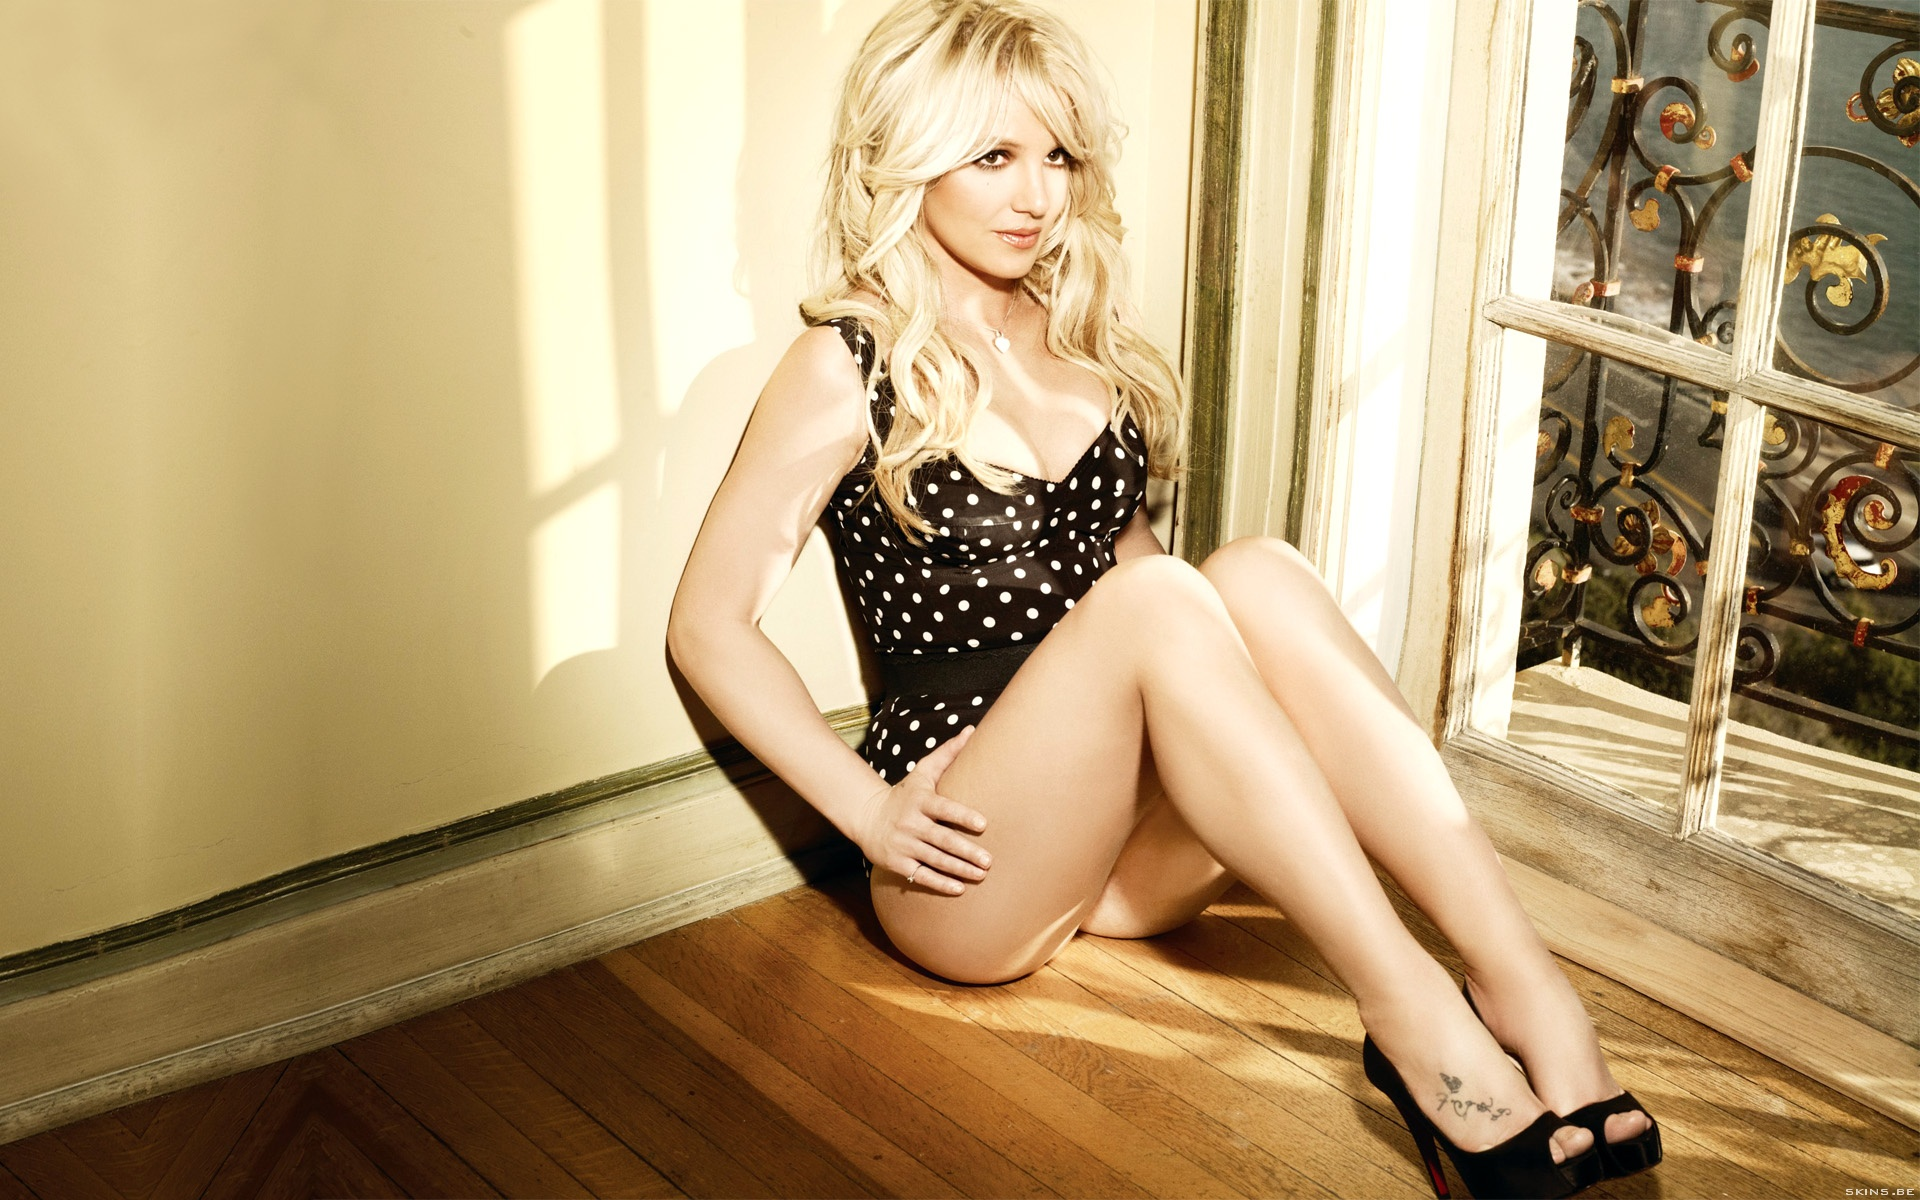 Britney Spears wallpaper (#39945)